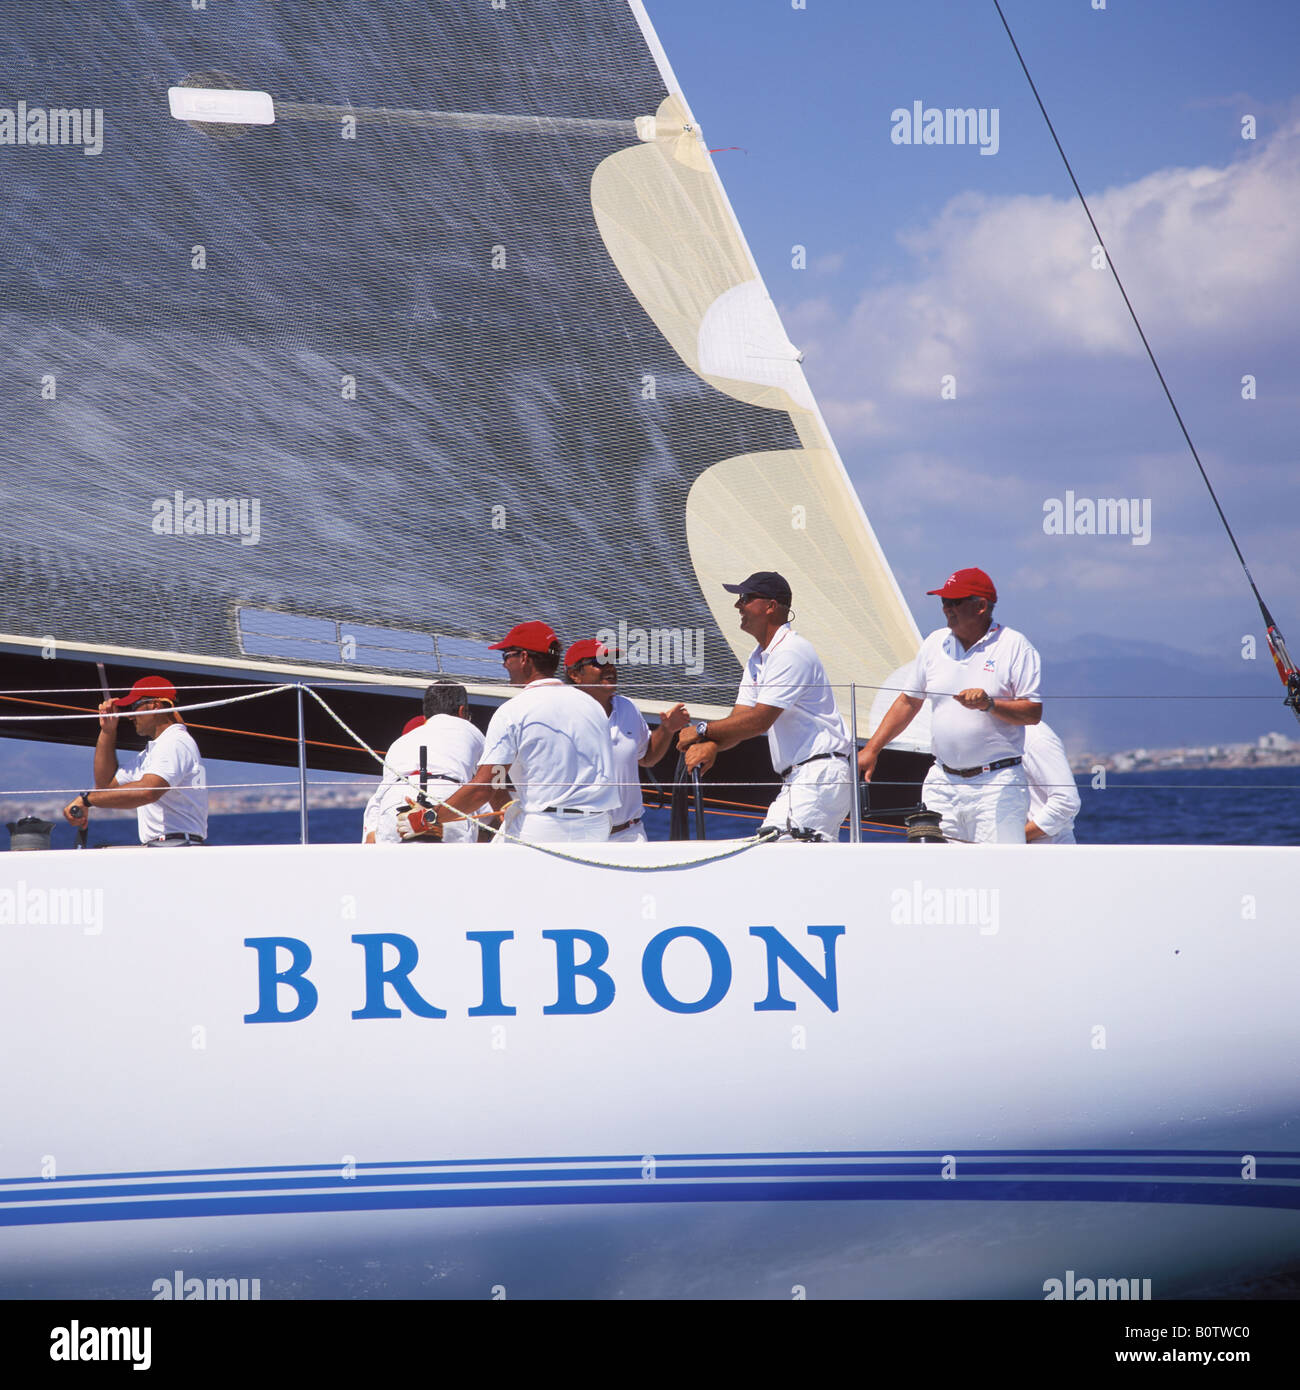 Bribon in IMS 500 category skippered by His Majesty King Juan Carlos of Spain during 22nd Copa Del Rey Kings Cup - Stock Image